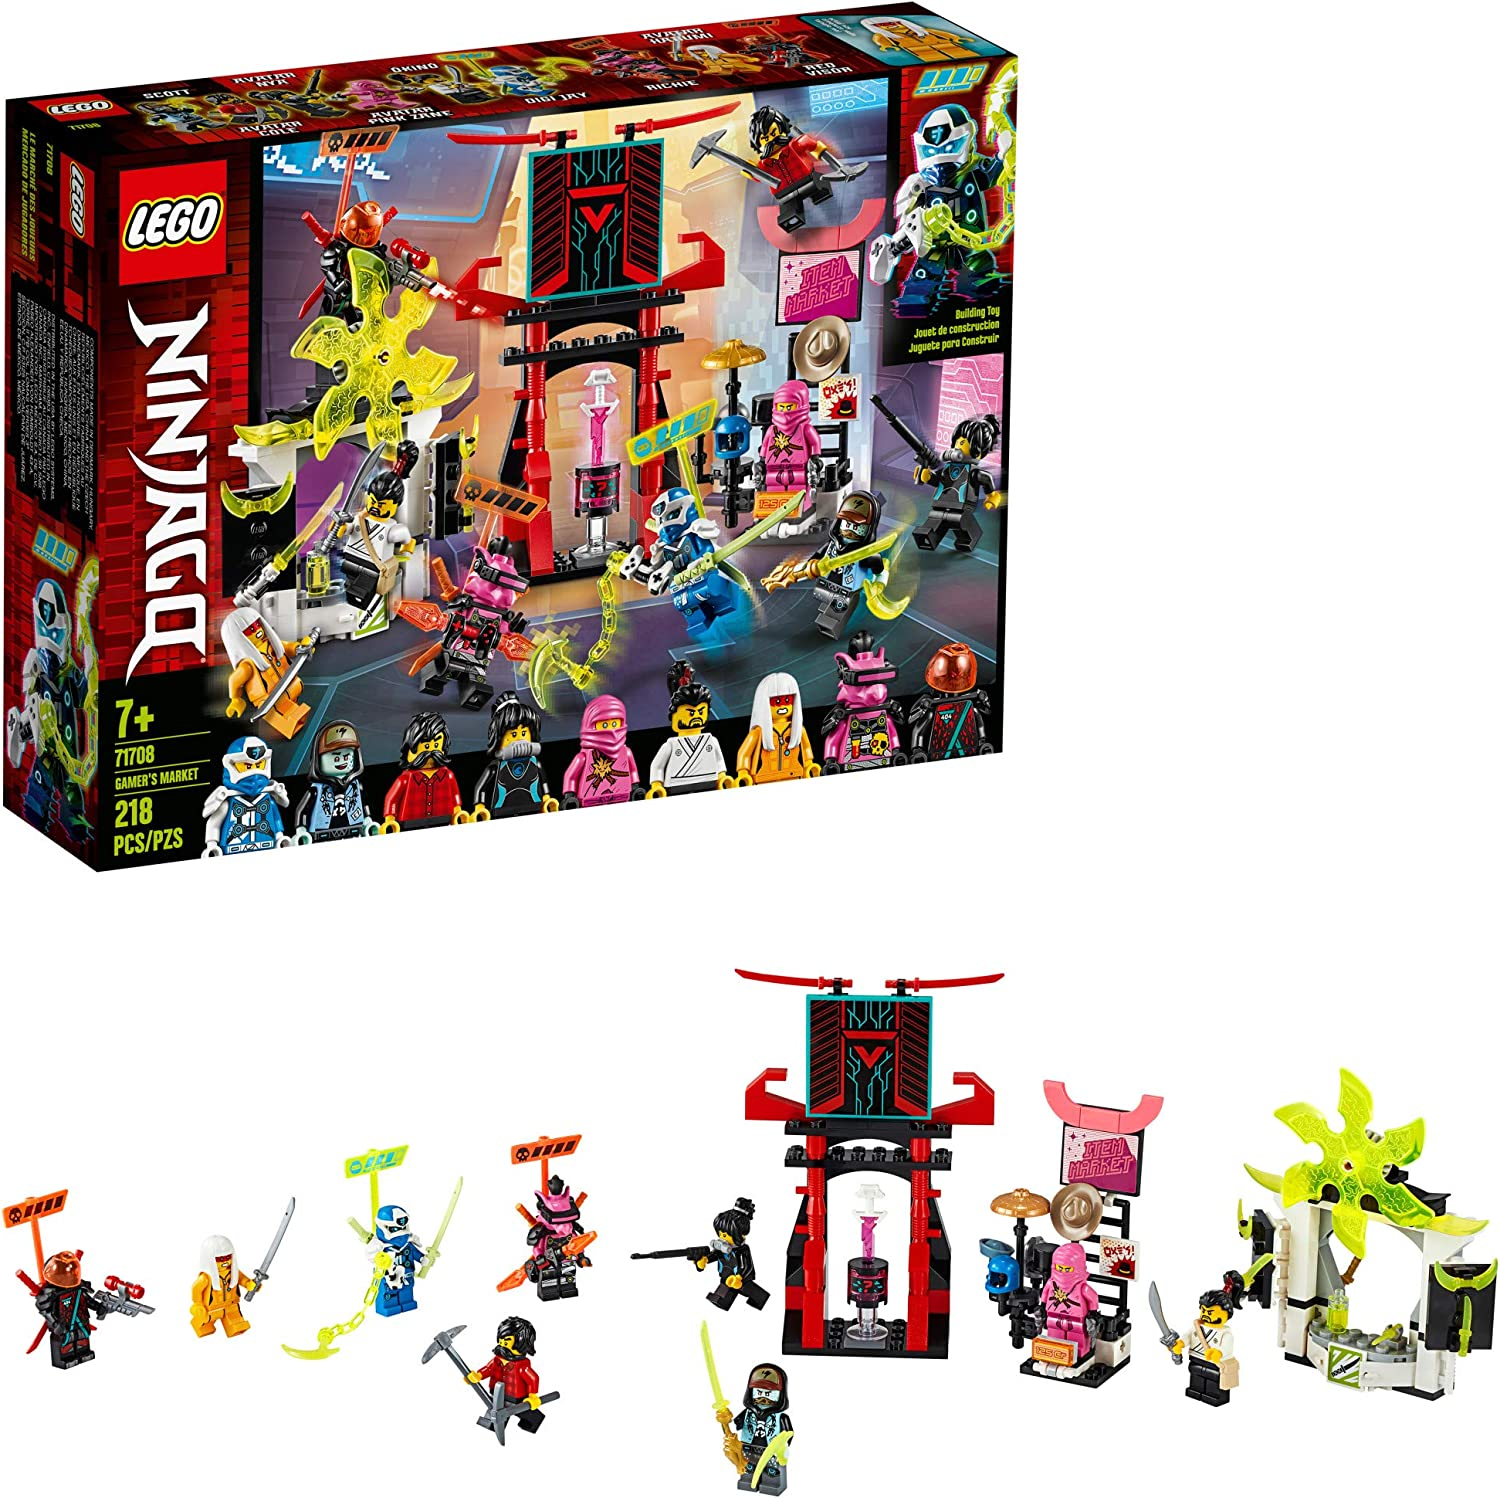 LEGO NINJAGO Gamer's Market 71708 Ninja Market Building Kit, New 2020 (218 Pieces)